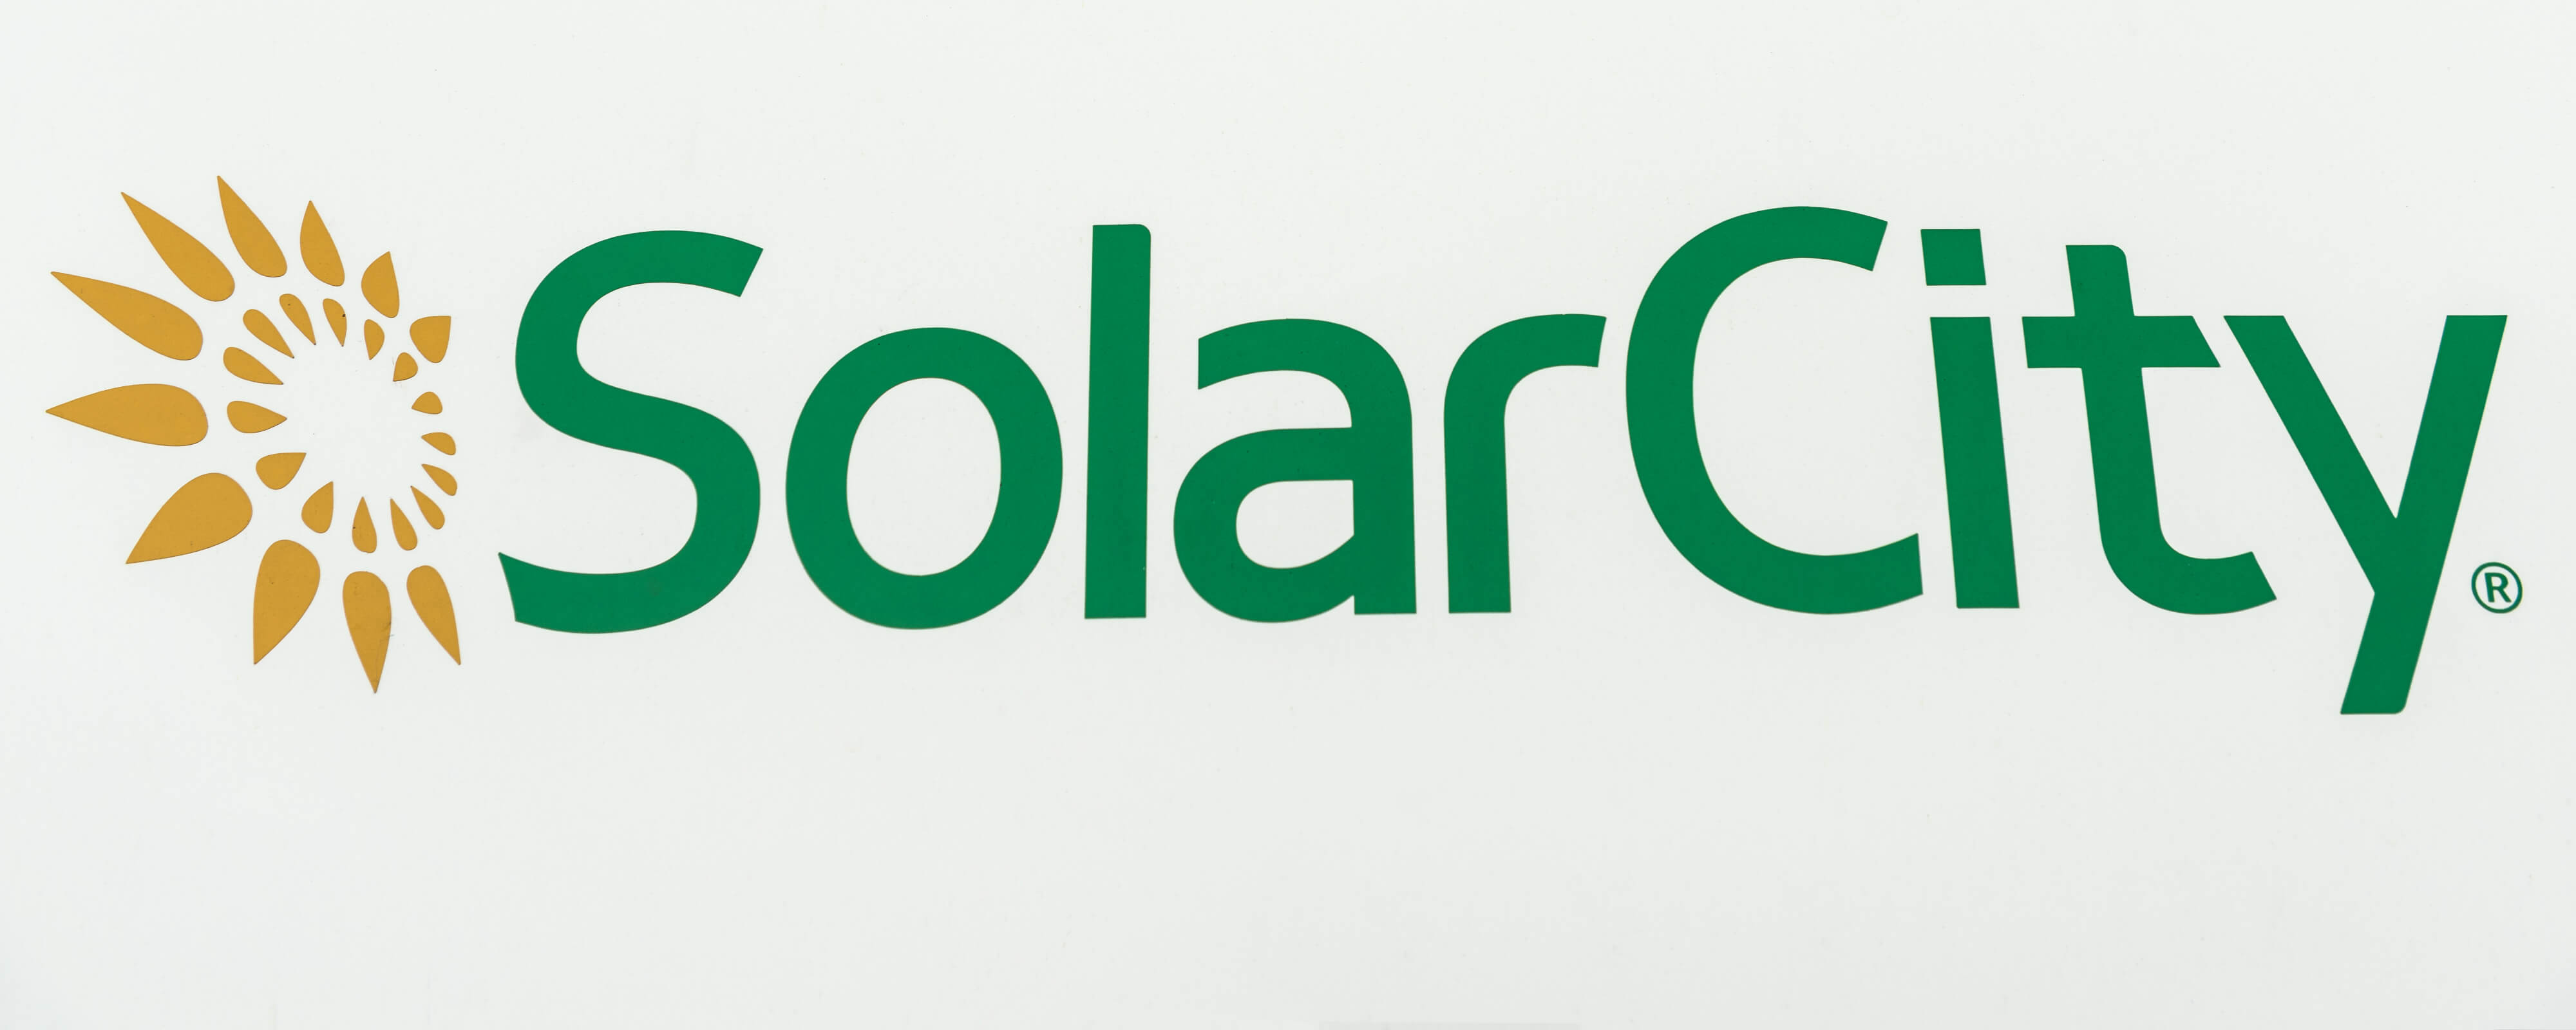 SolarCity Logo - Core News - Trouble for SolarCity as Reporters and Investors ...